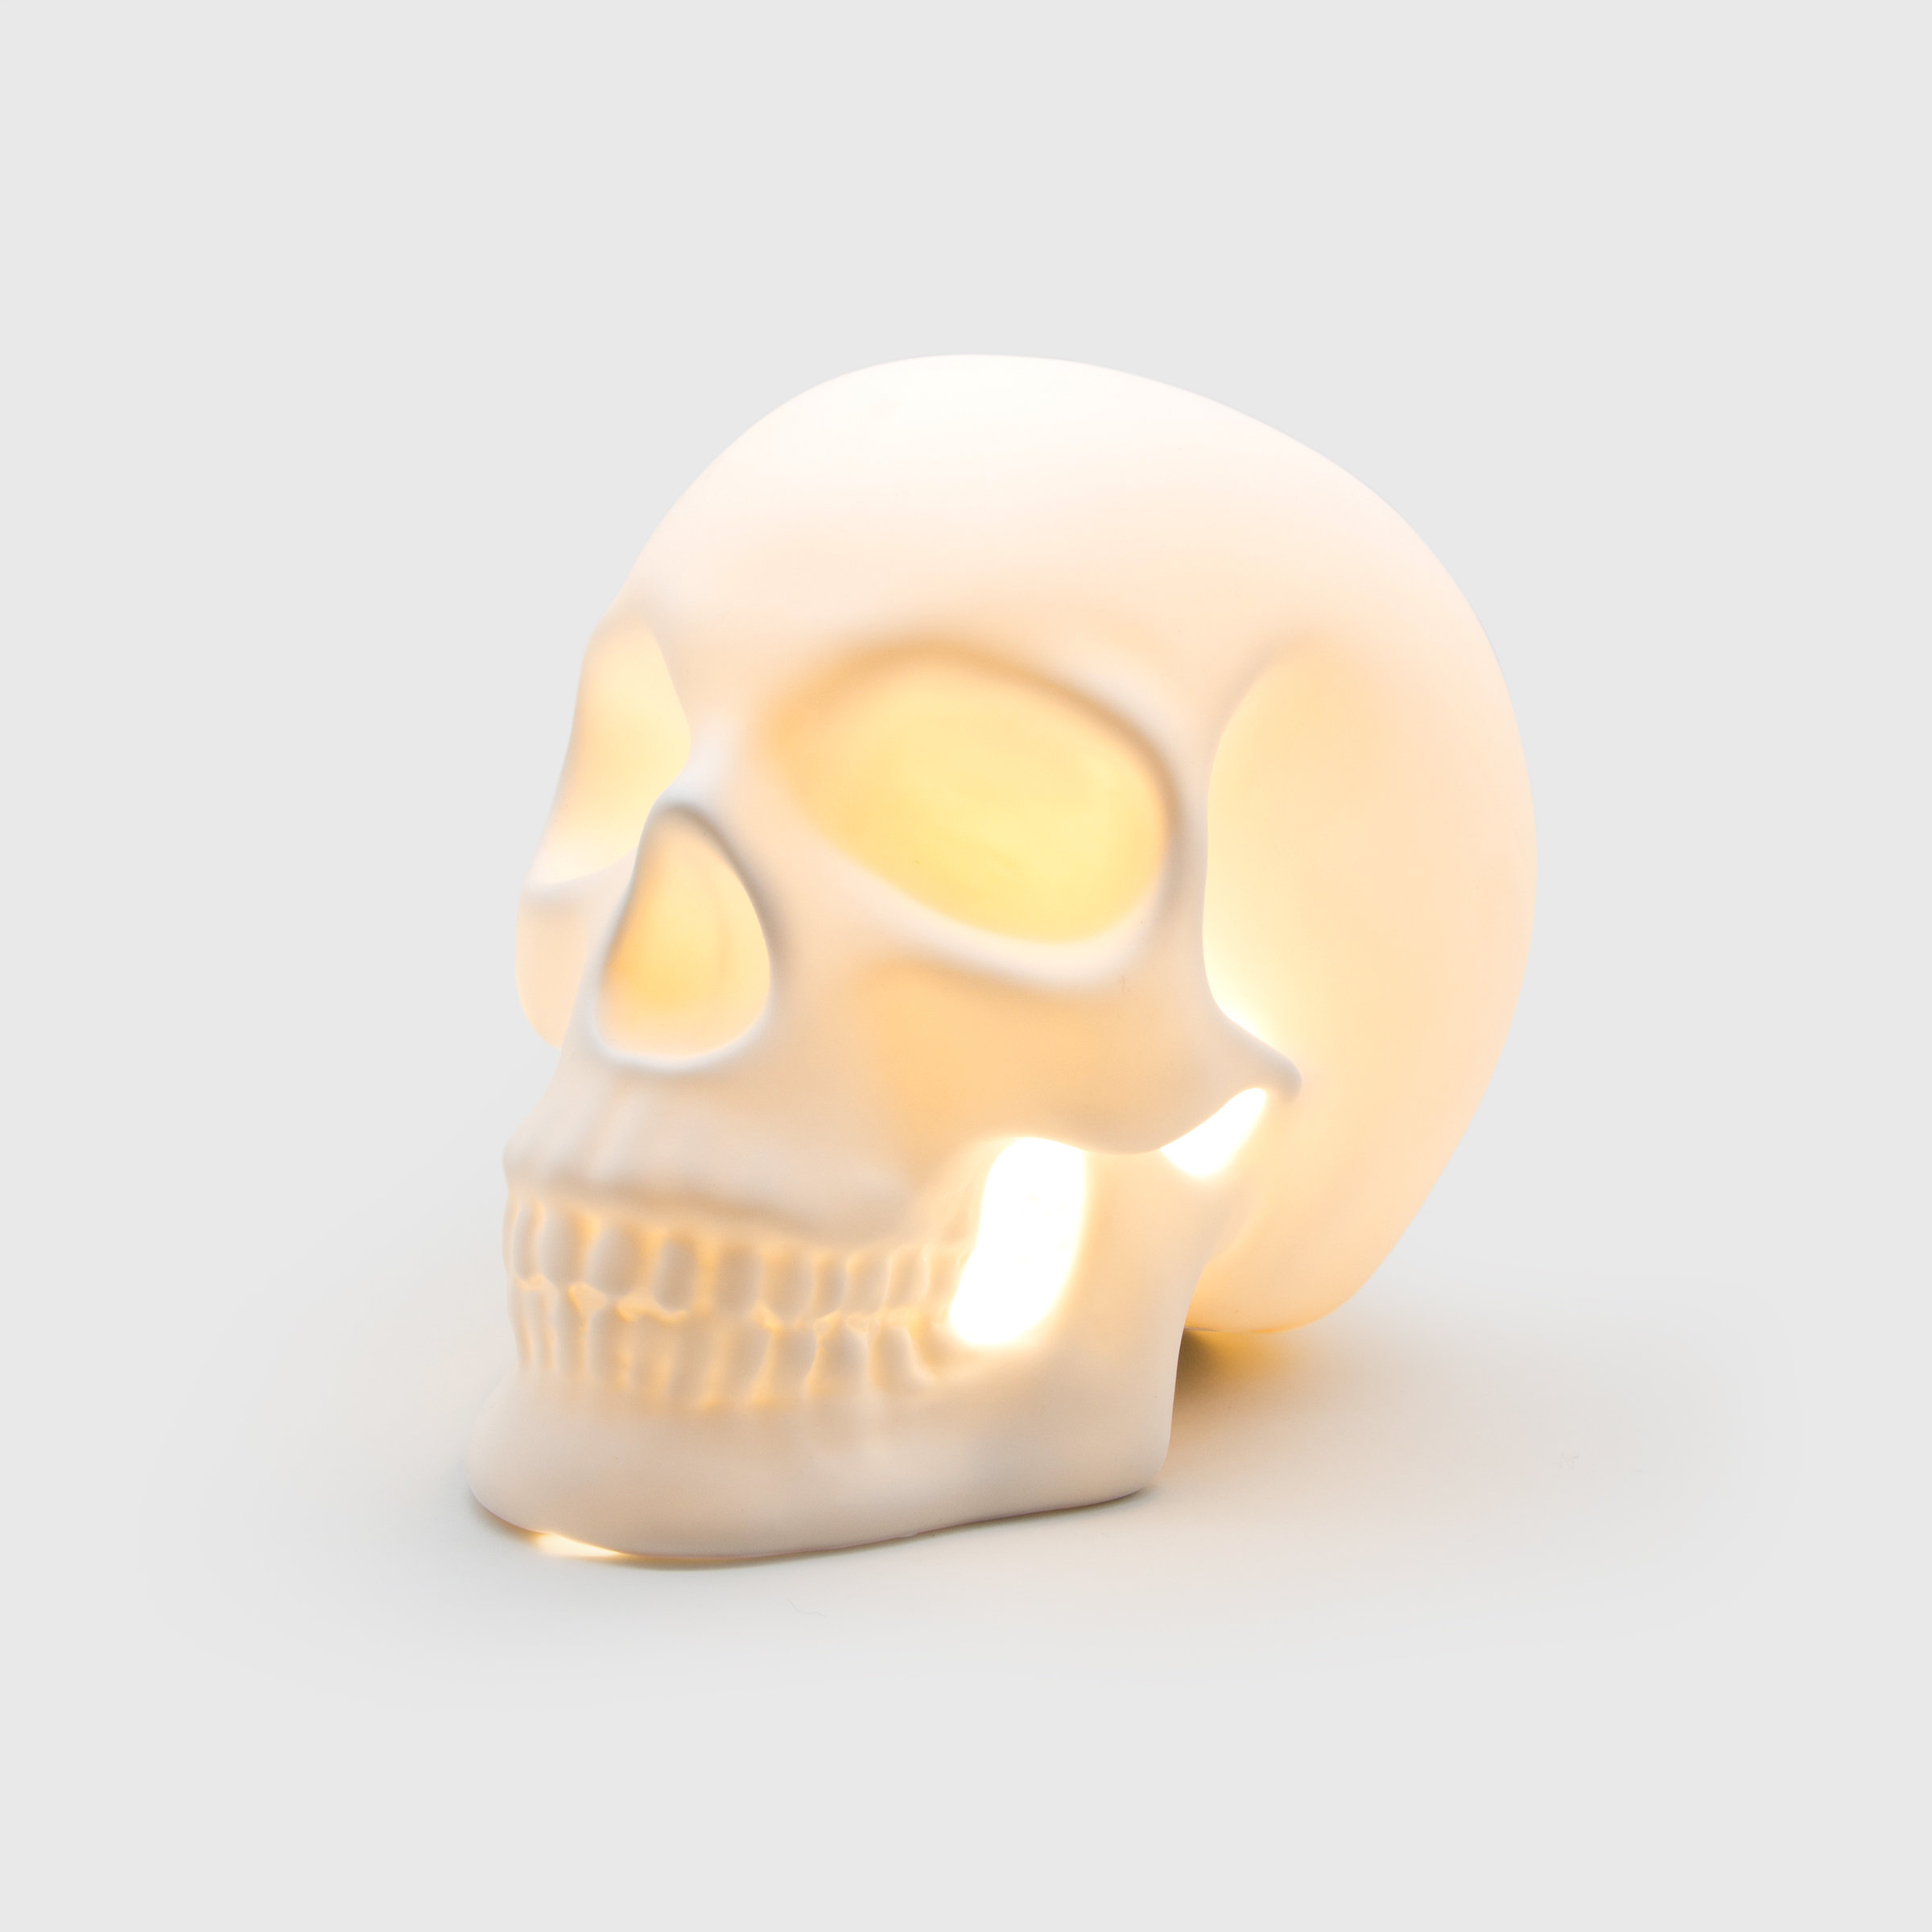 Decorative skull shaped lamp made from ceramic